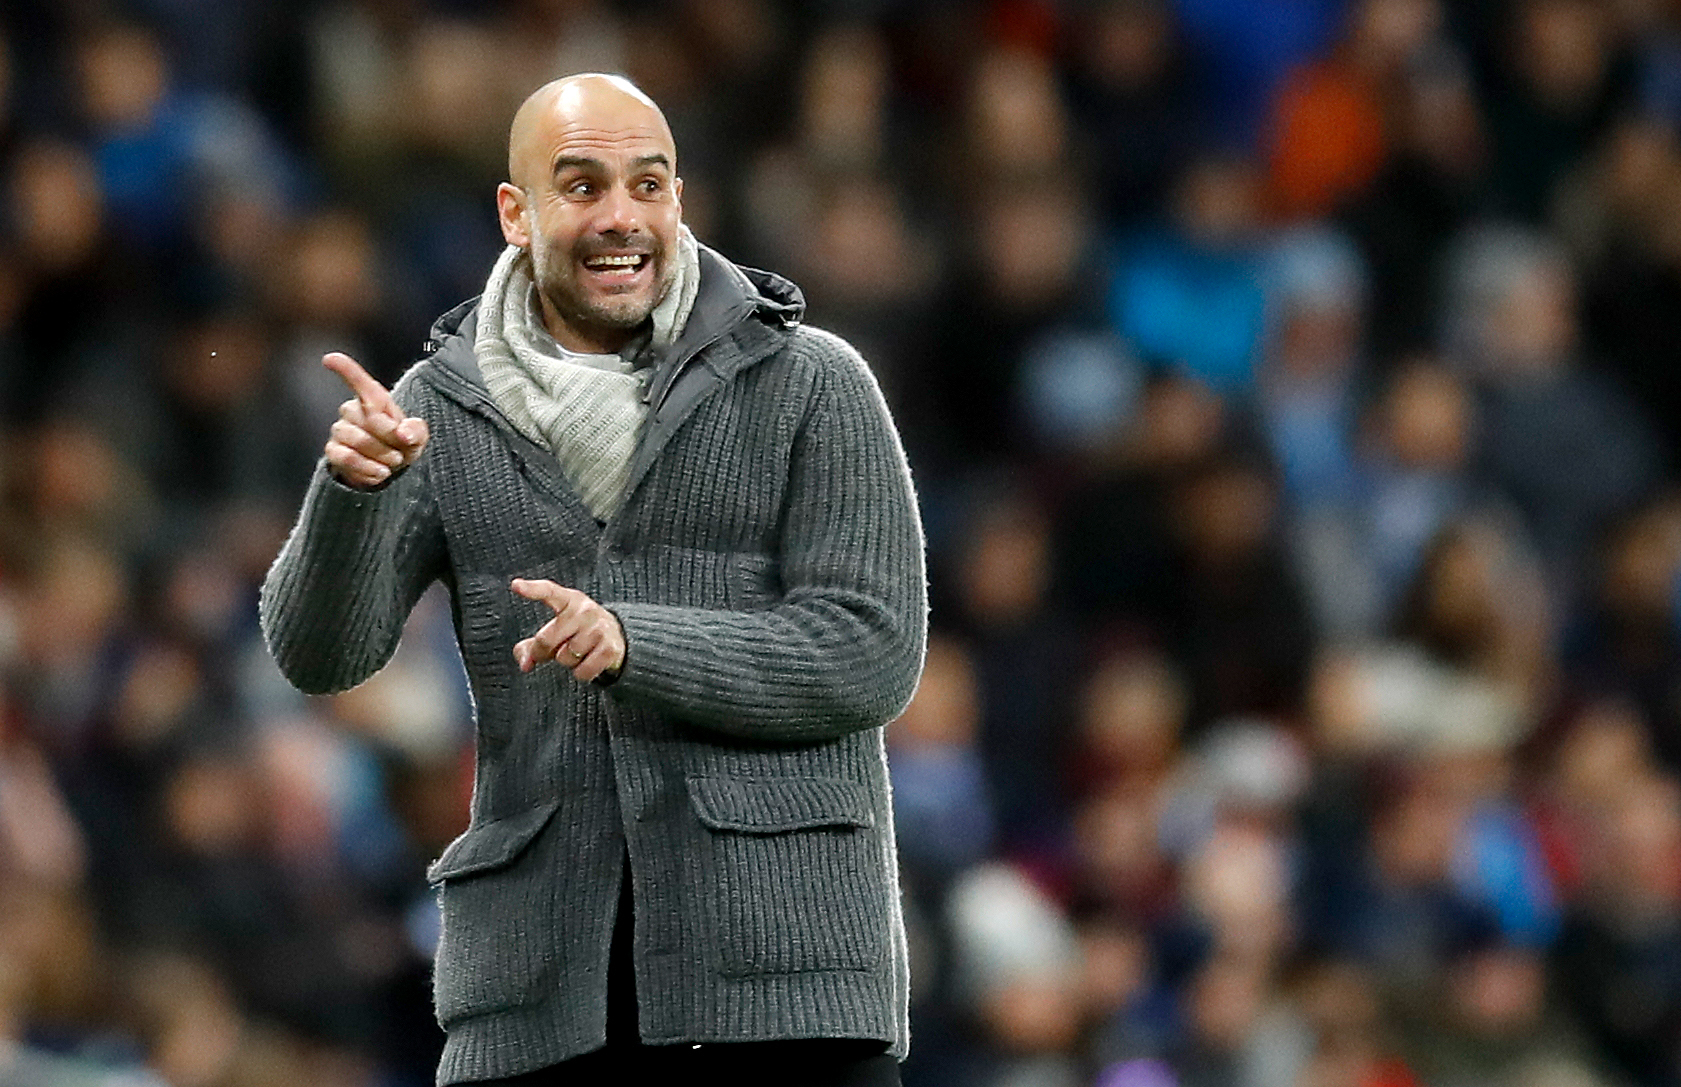 Pep Guardiola's Manchester City could win four trophies this season